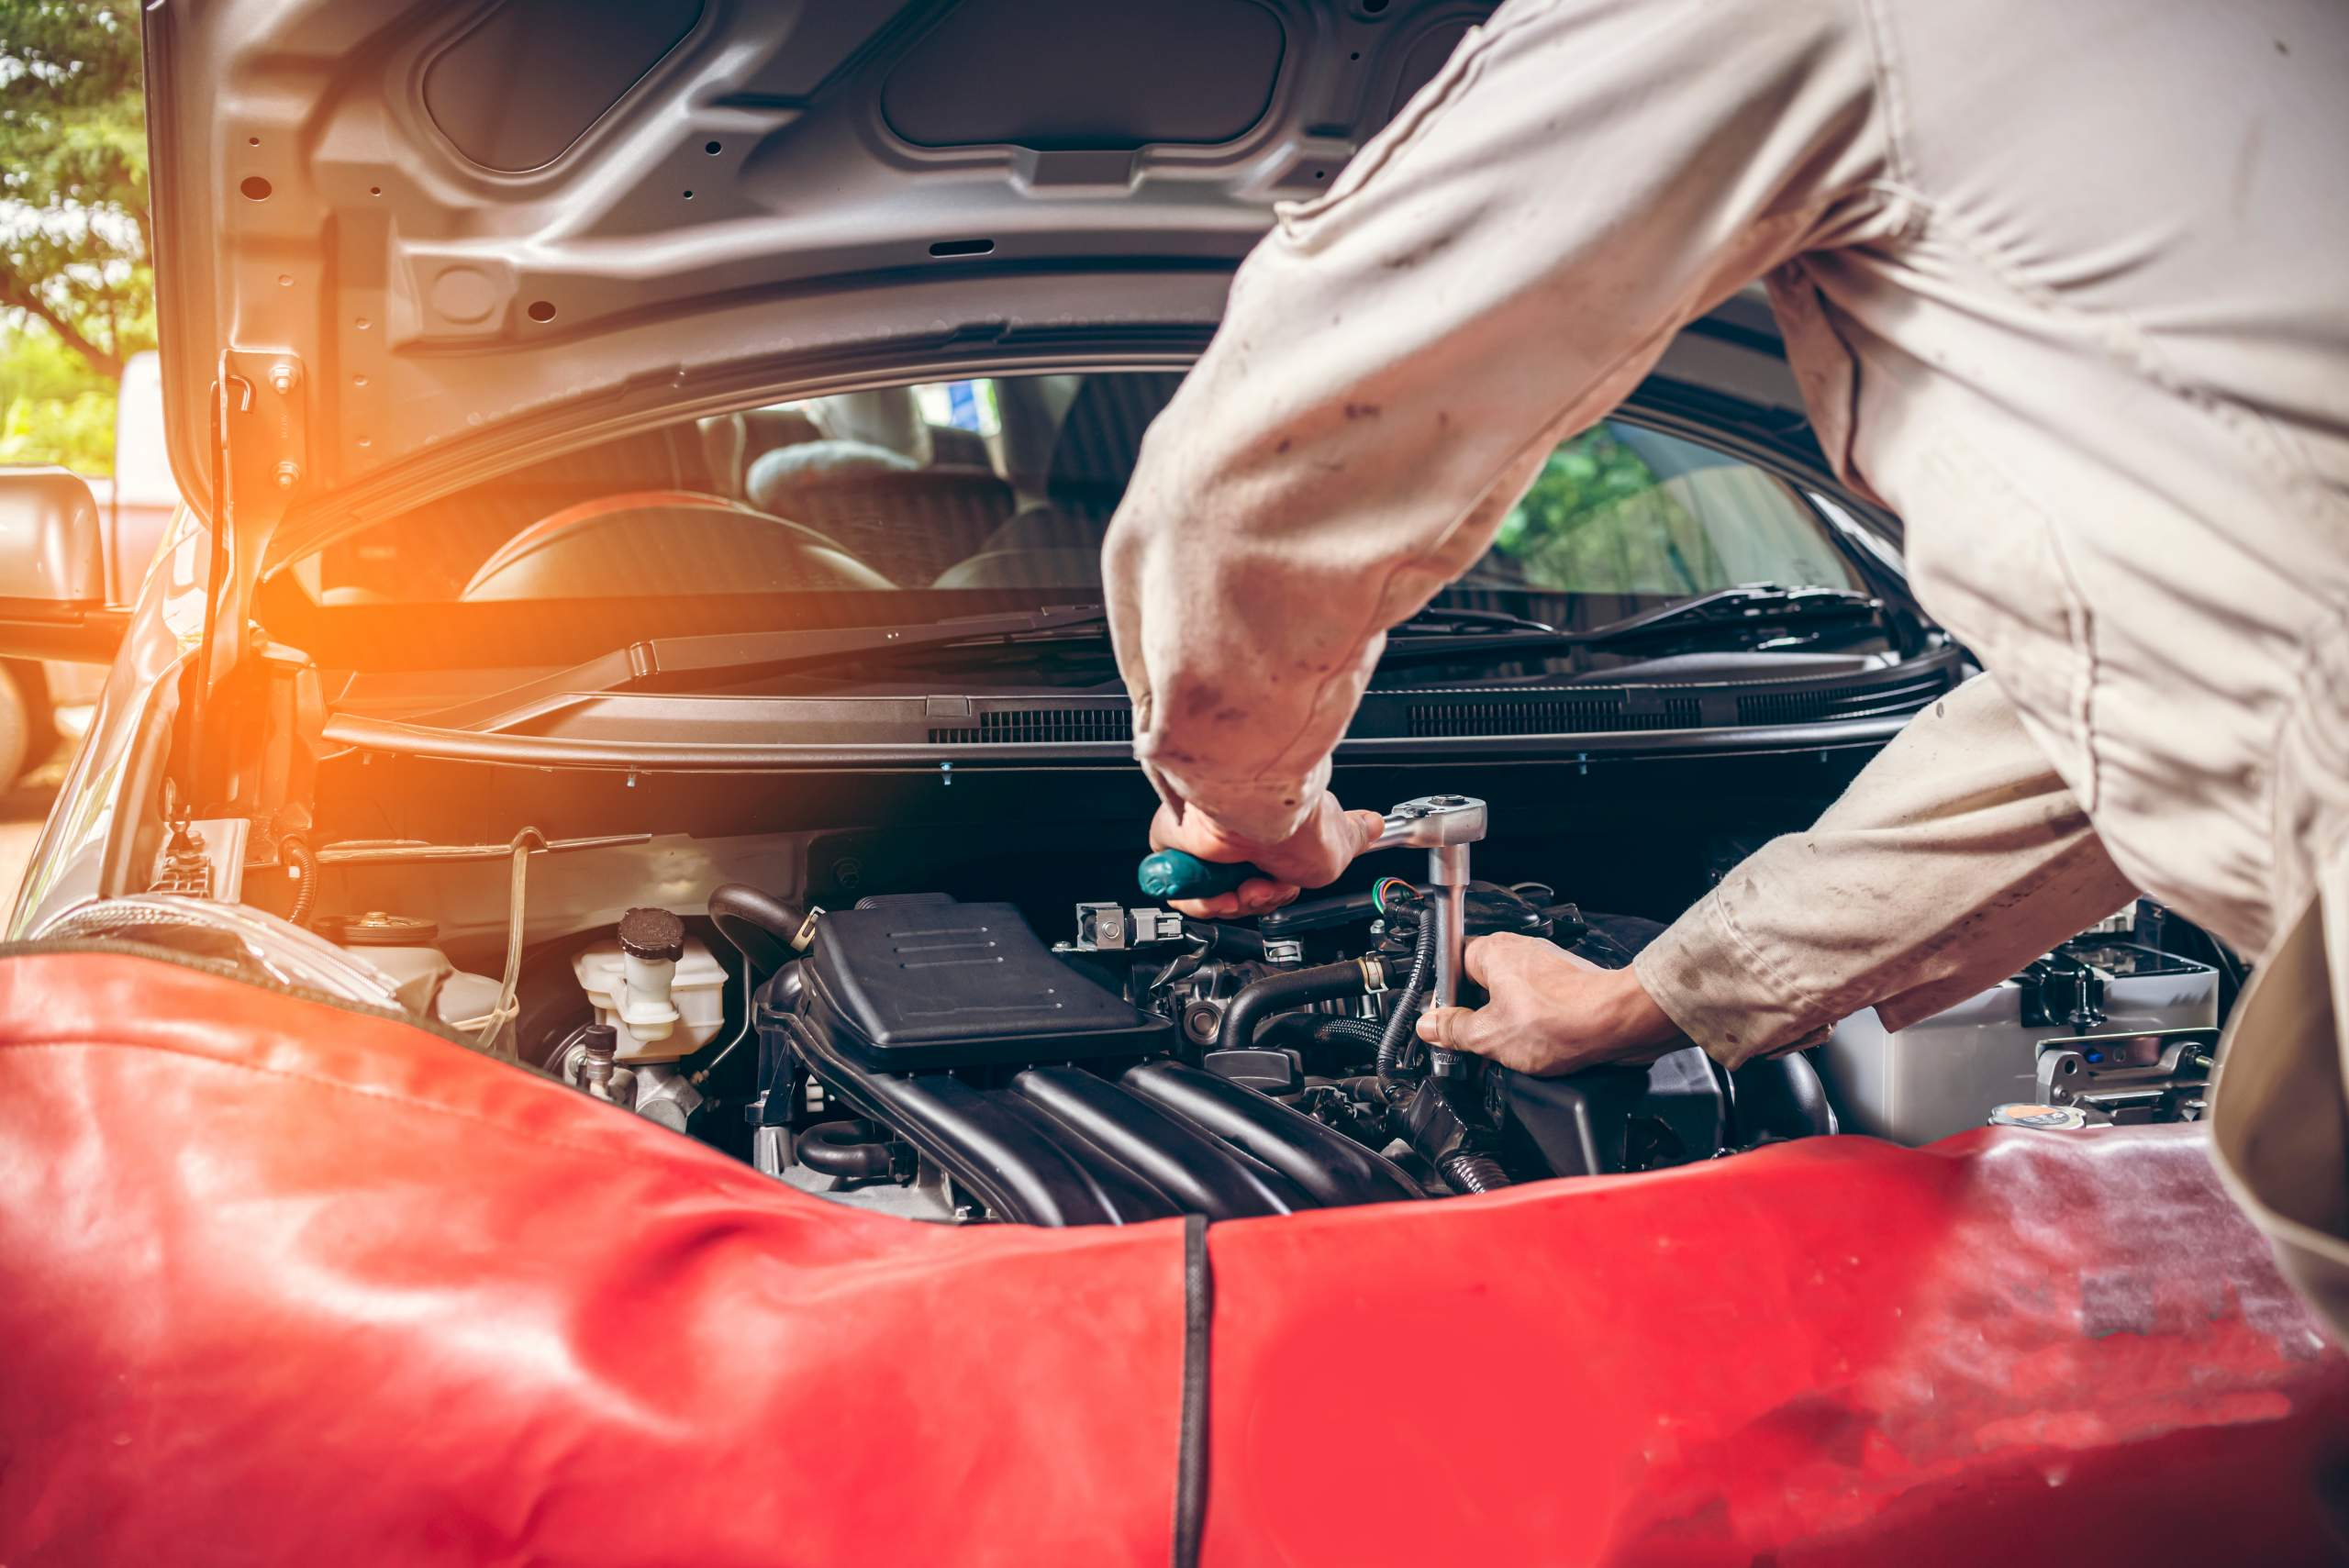 Basic Car Maintenance Tips Every Driver Should Know - Autoversed